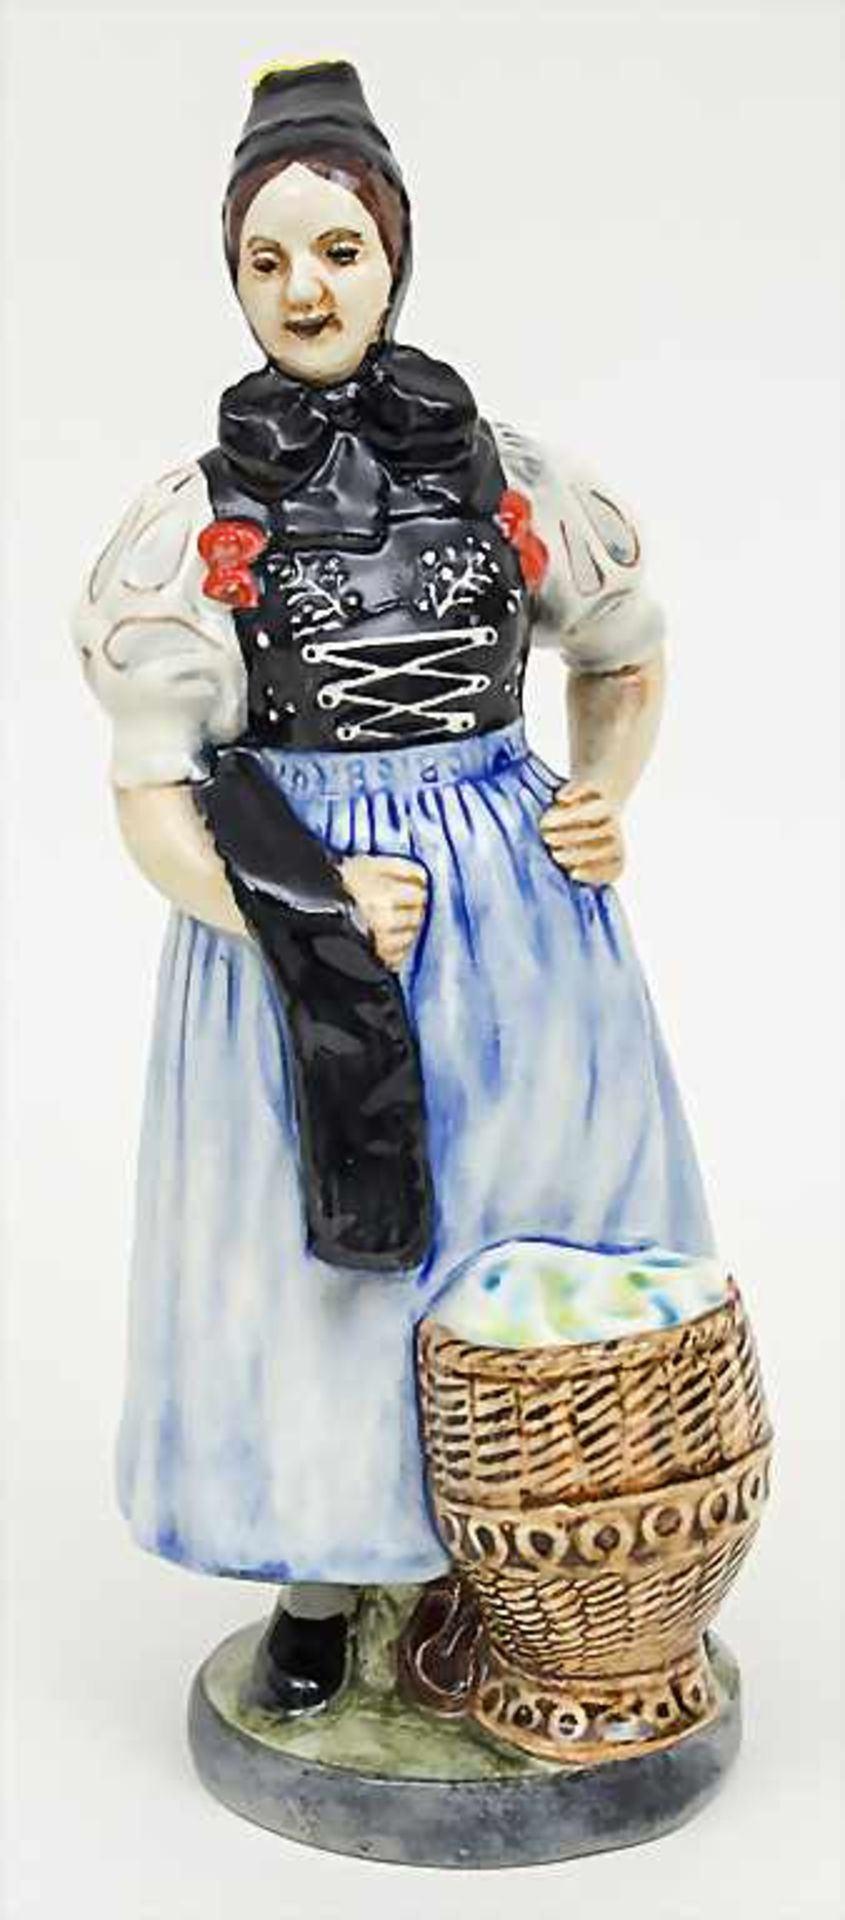 Trachtenfigur 'Tribergerin' / A costumed woman from the Black Forest, Karlsruher Majolika, um